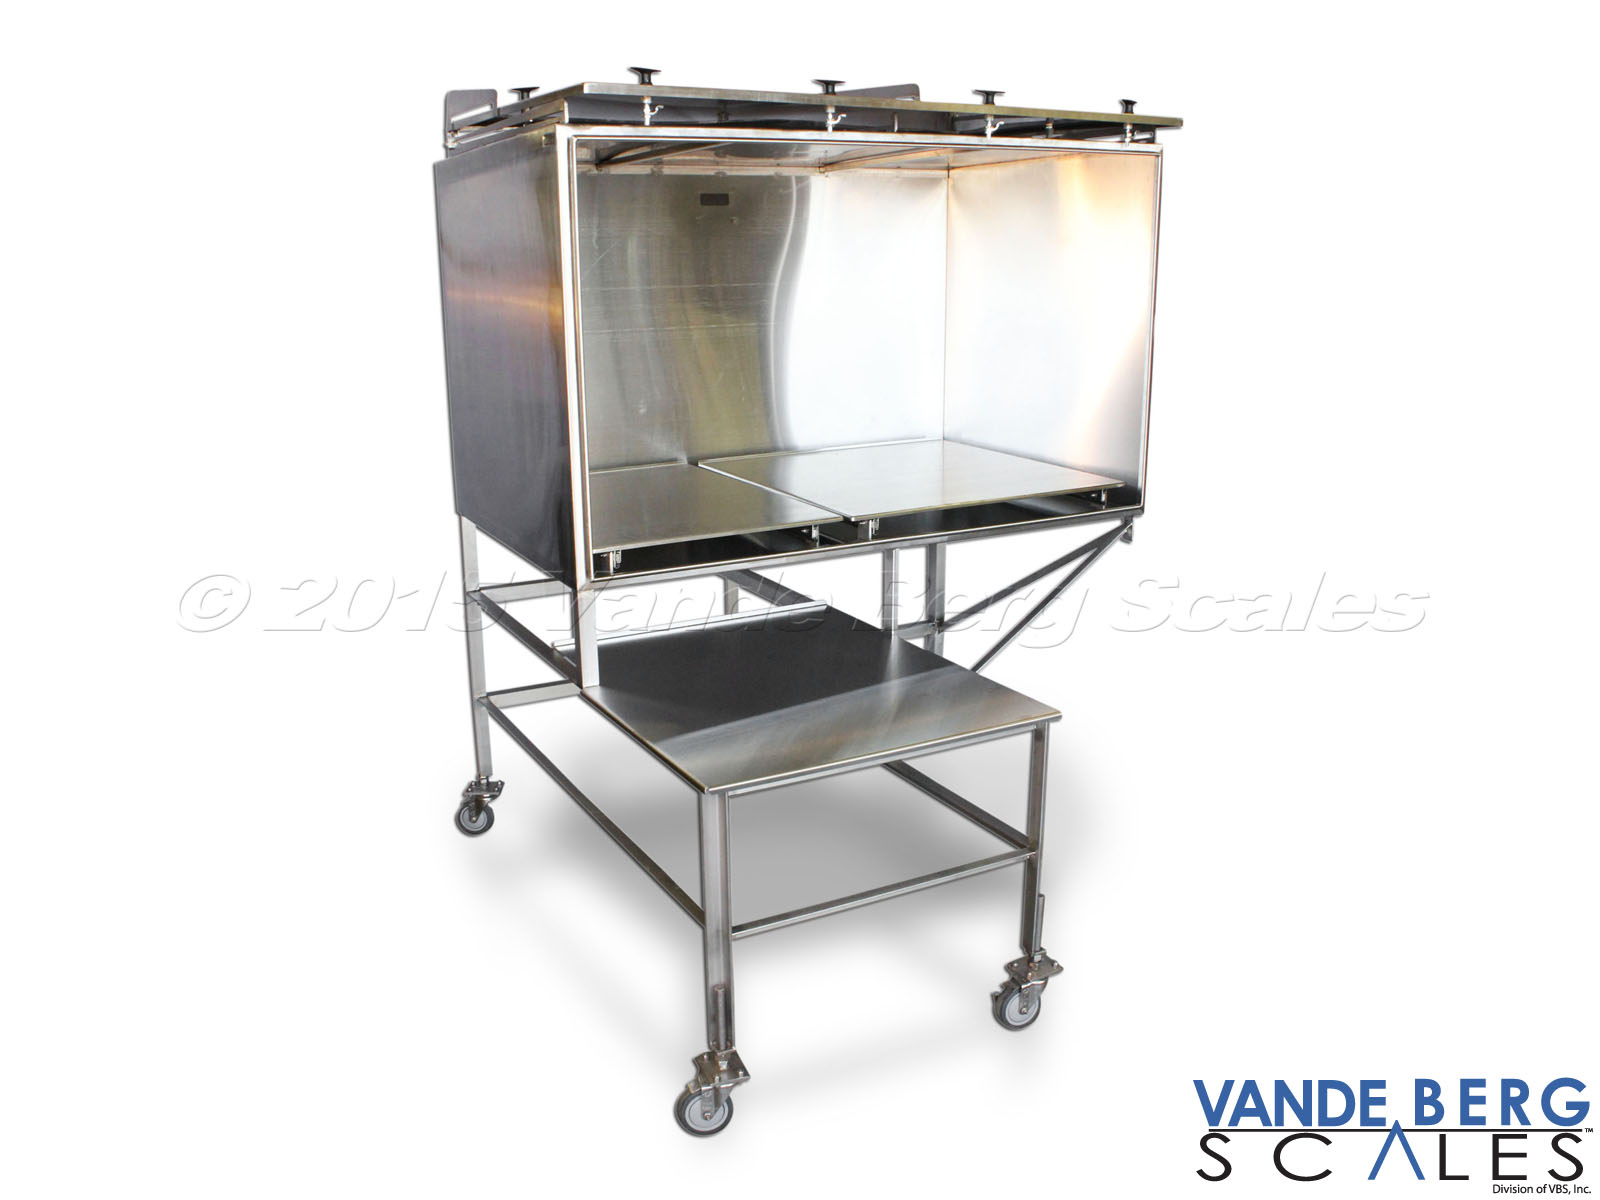 Large industrial stainless steel mobile cart with large enclosure, work platform and casters for easy mobility.